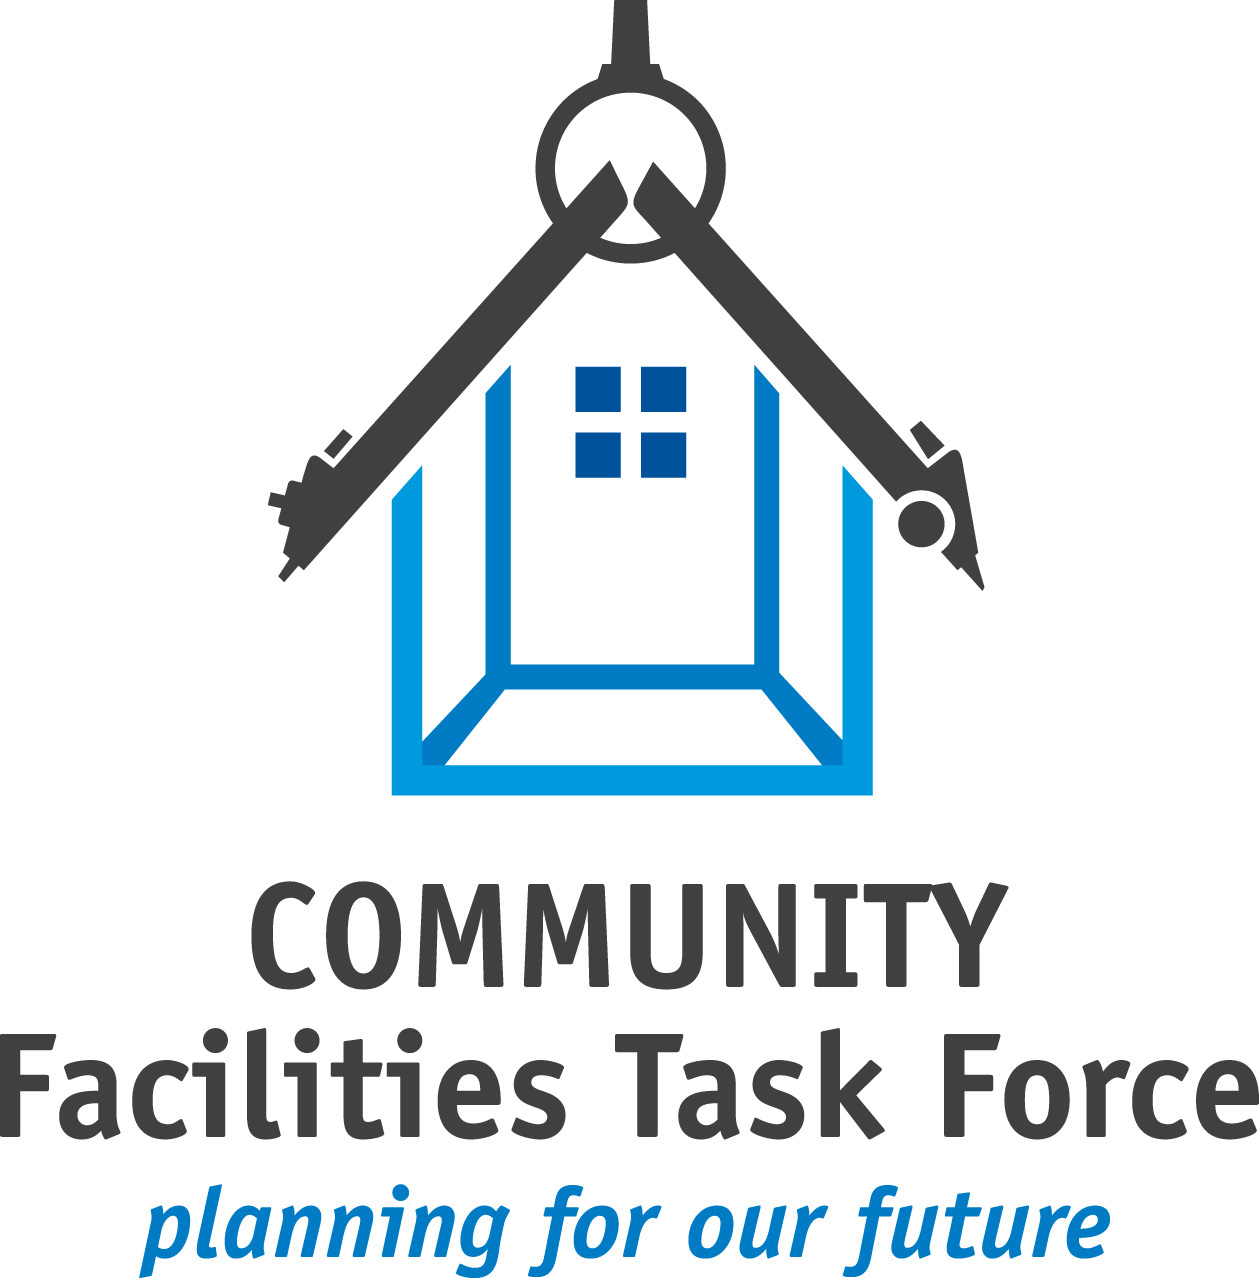 Community Facilities Task Force